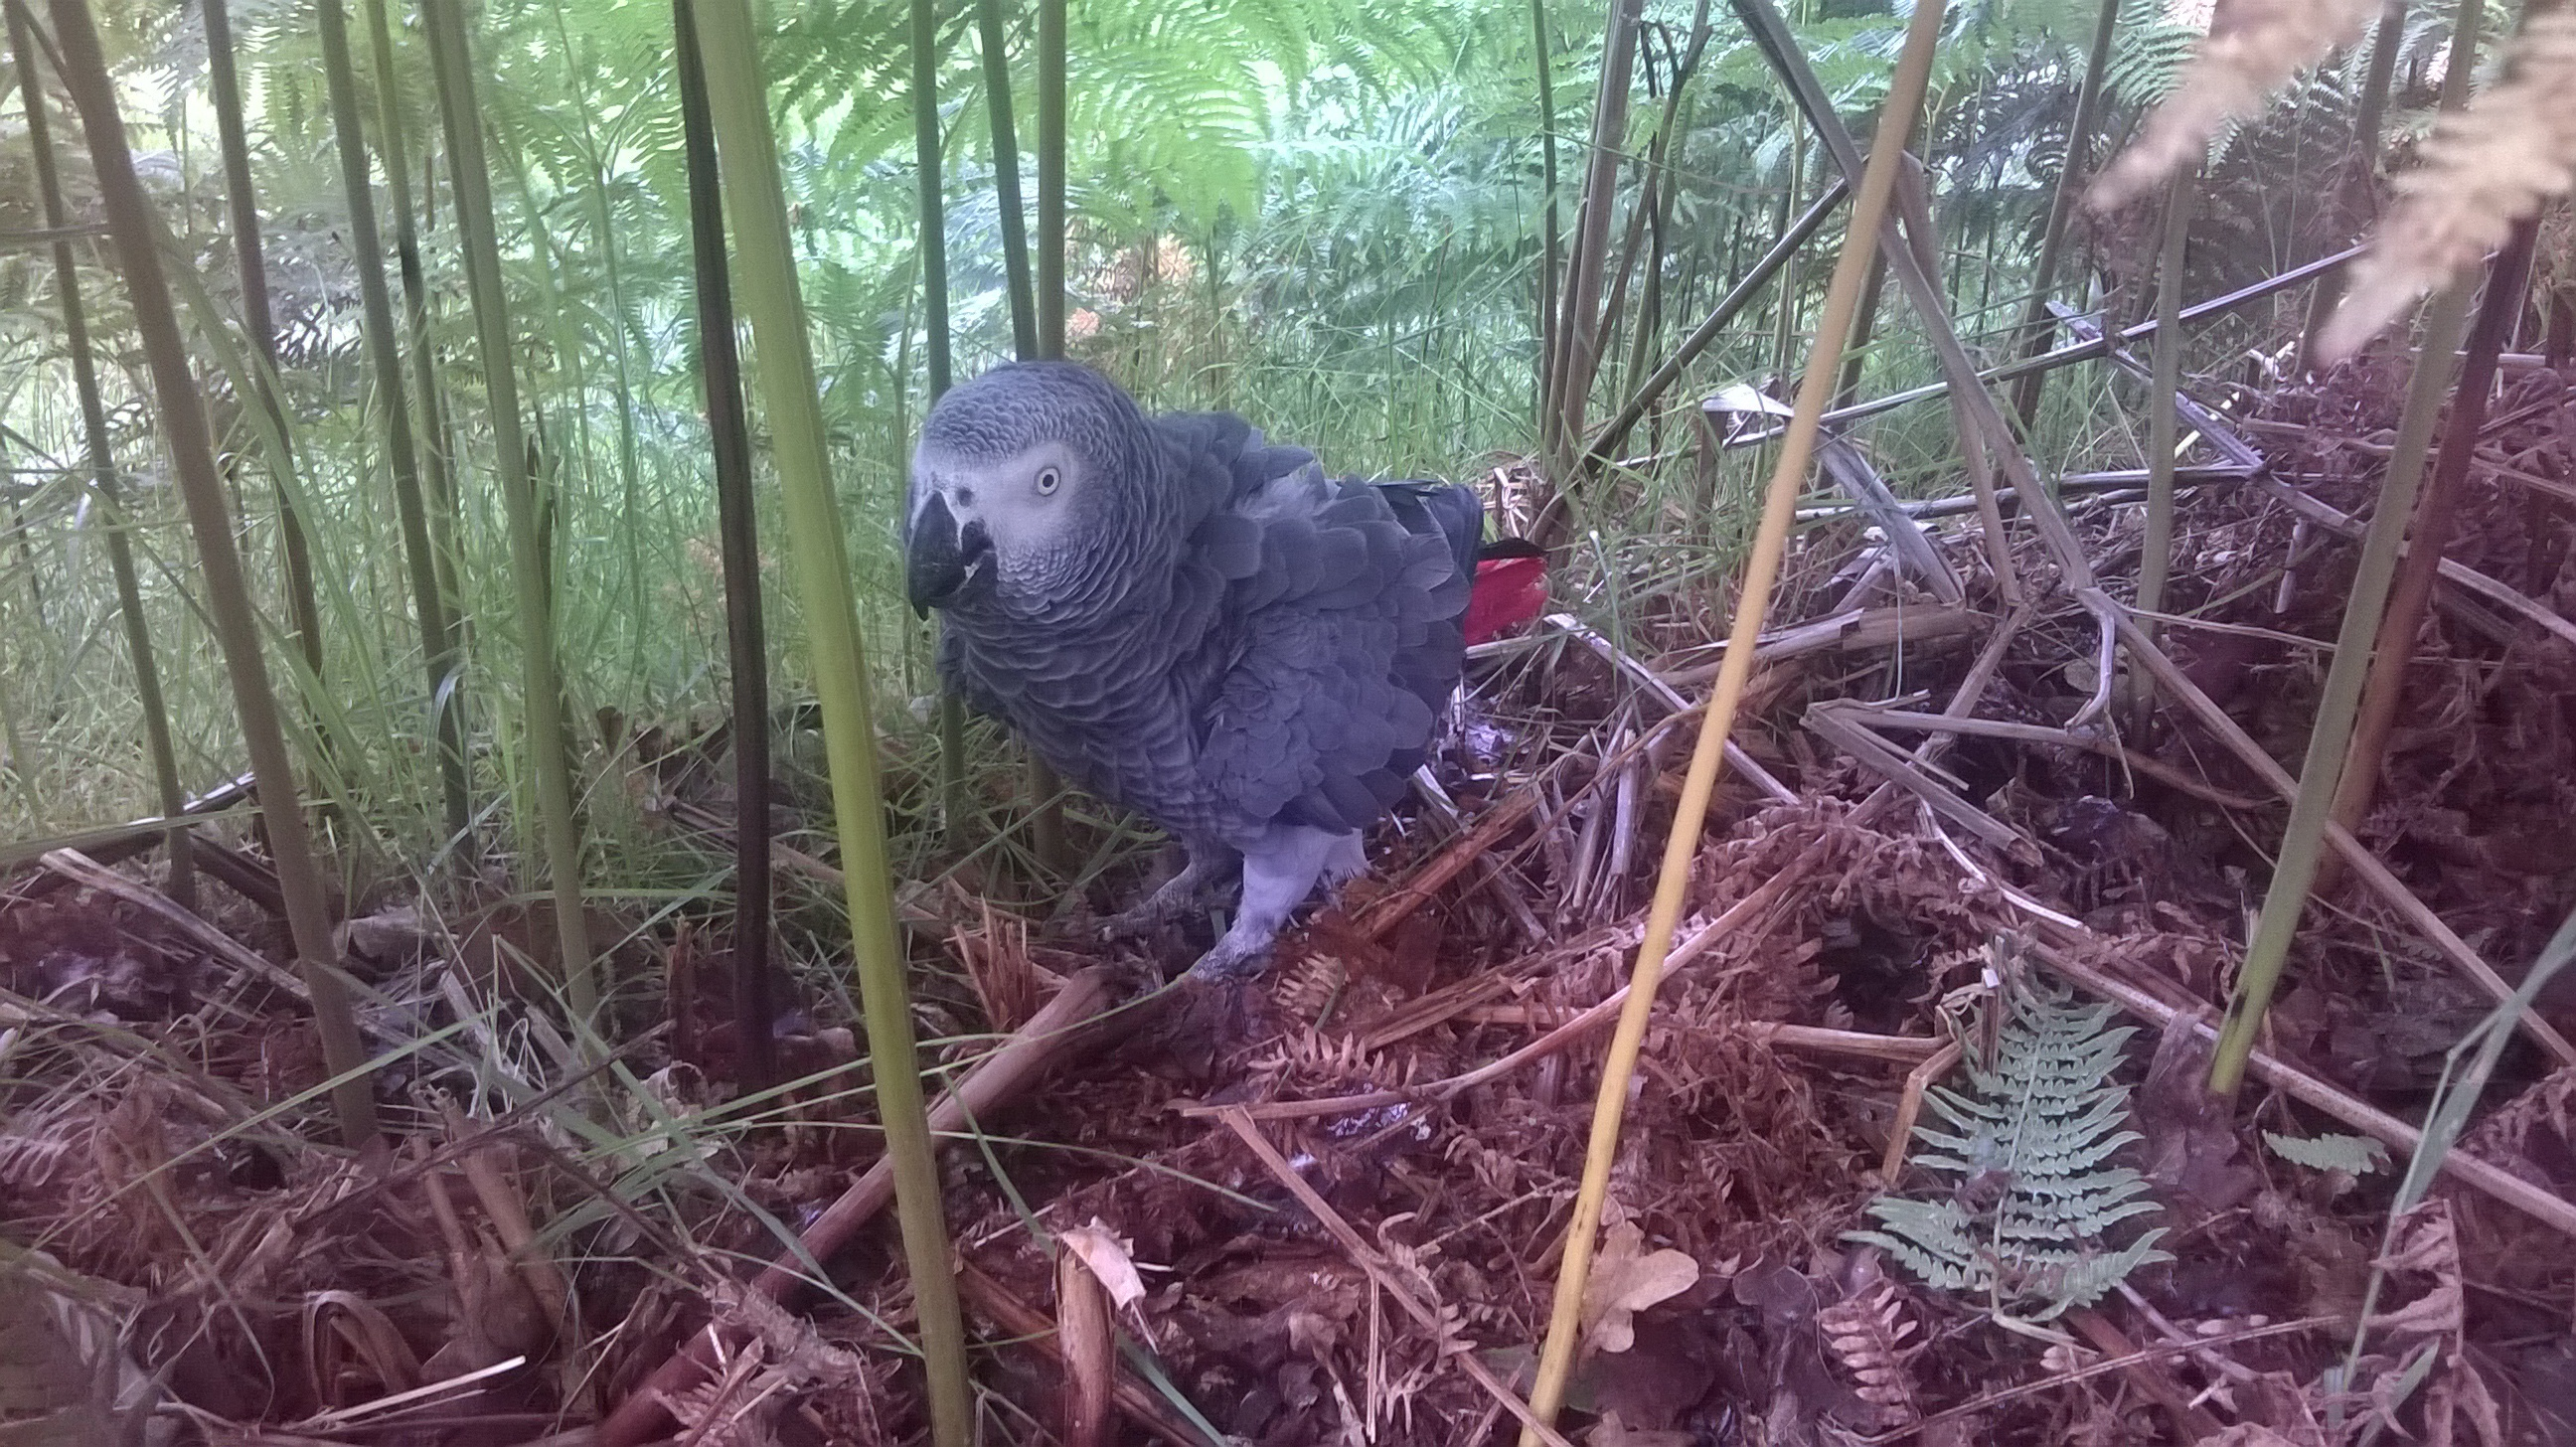 Rio the parrot hiding among the ferns